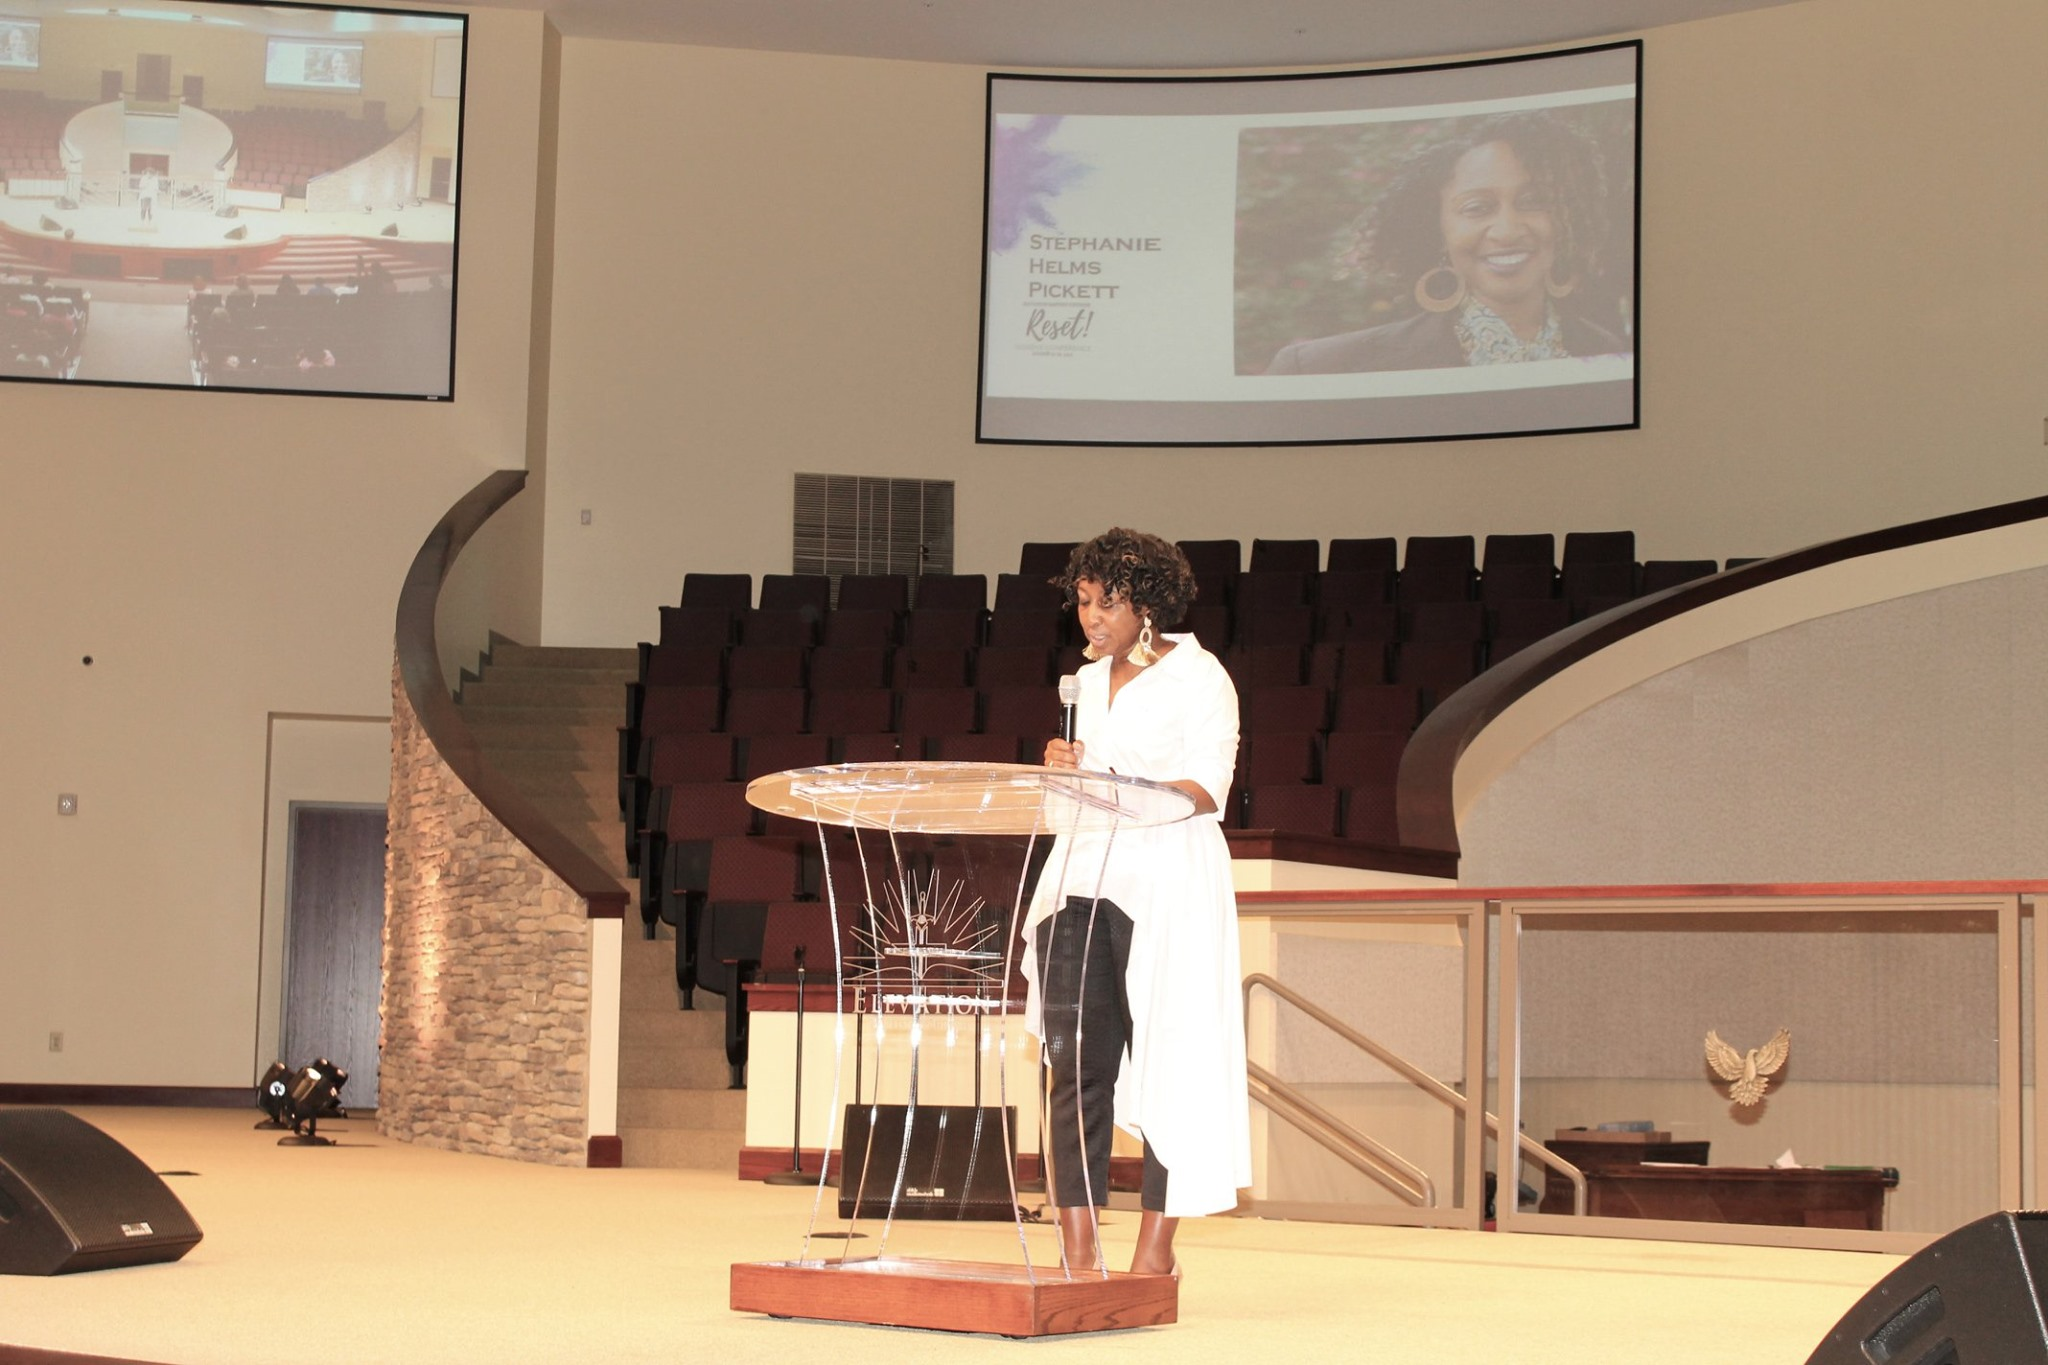 Stephanie Helms Pickett Speaking at a Women's Conference in North Carolina